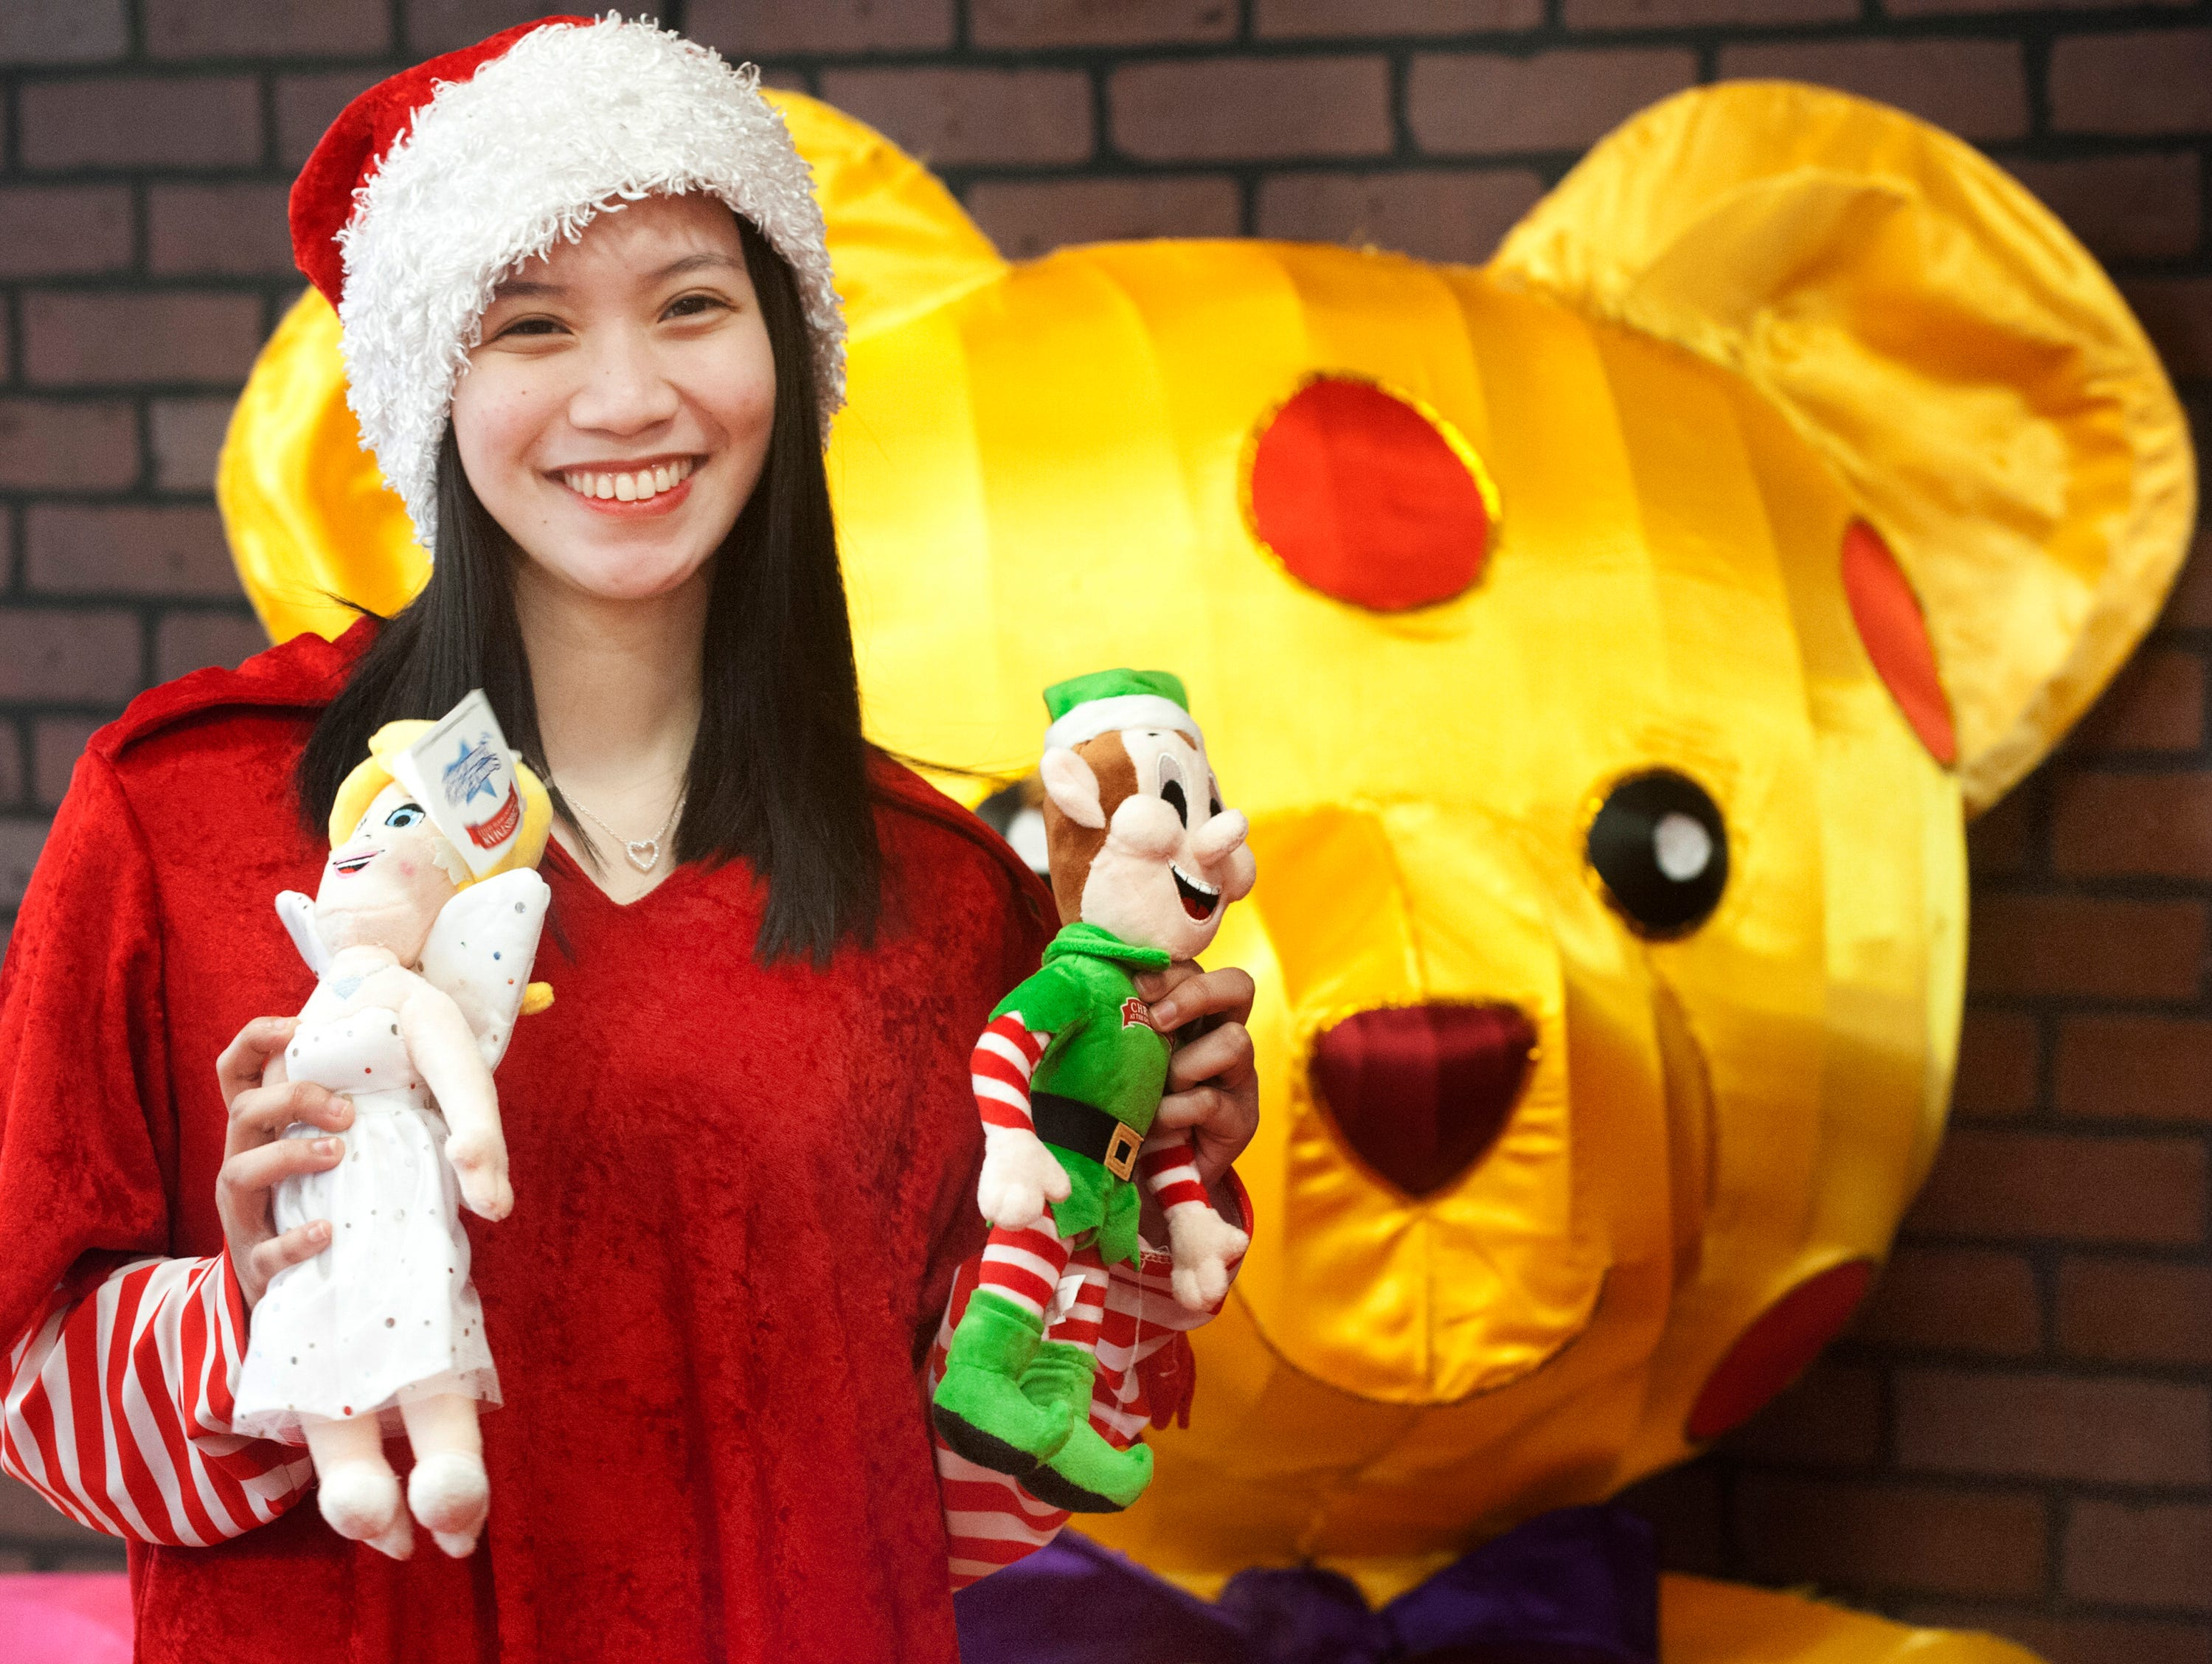 Santa's elf Marjorie Torres shows off male and female dolls in the Santa room. Everyone who visited with Santa got their choice of the female or male stuffed toy.22 December 2018